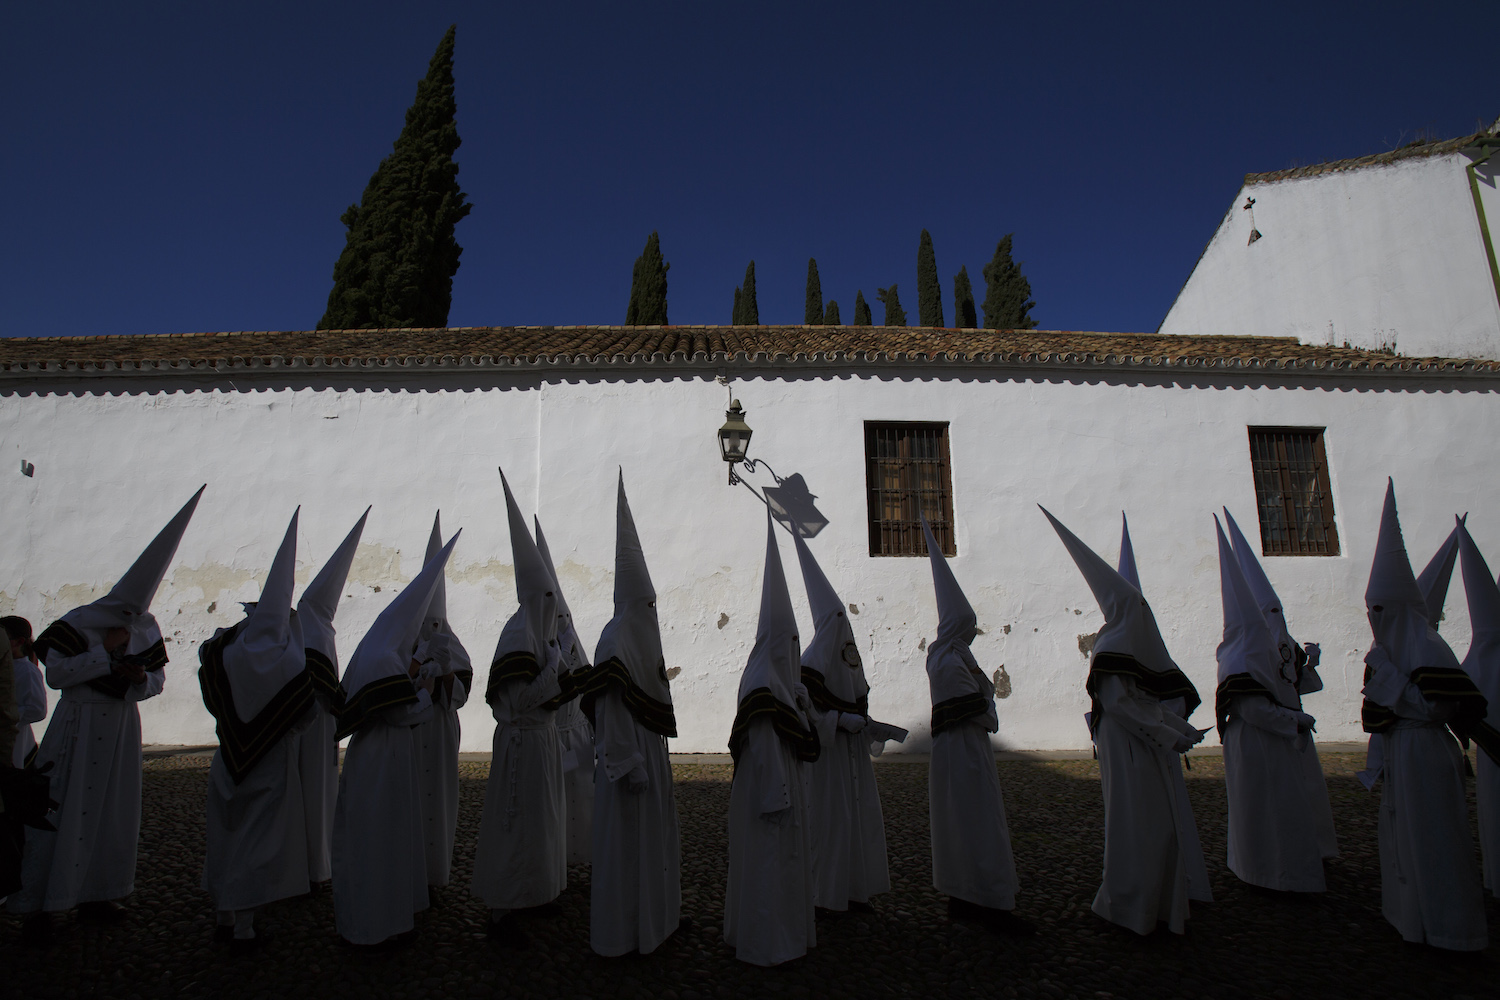 Penitents from La Paz brotherhood queue to enter Capuchinos Church before a procession during Easter Wednesday on March 28, 2018 in Cordoba, Spain. Spain celebrates the holy week before Easter with processions in most Spanish towns and villages.  (Photo by Pablo Blazquez Dominguez/Getty Images)